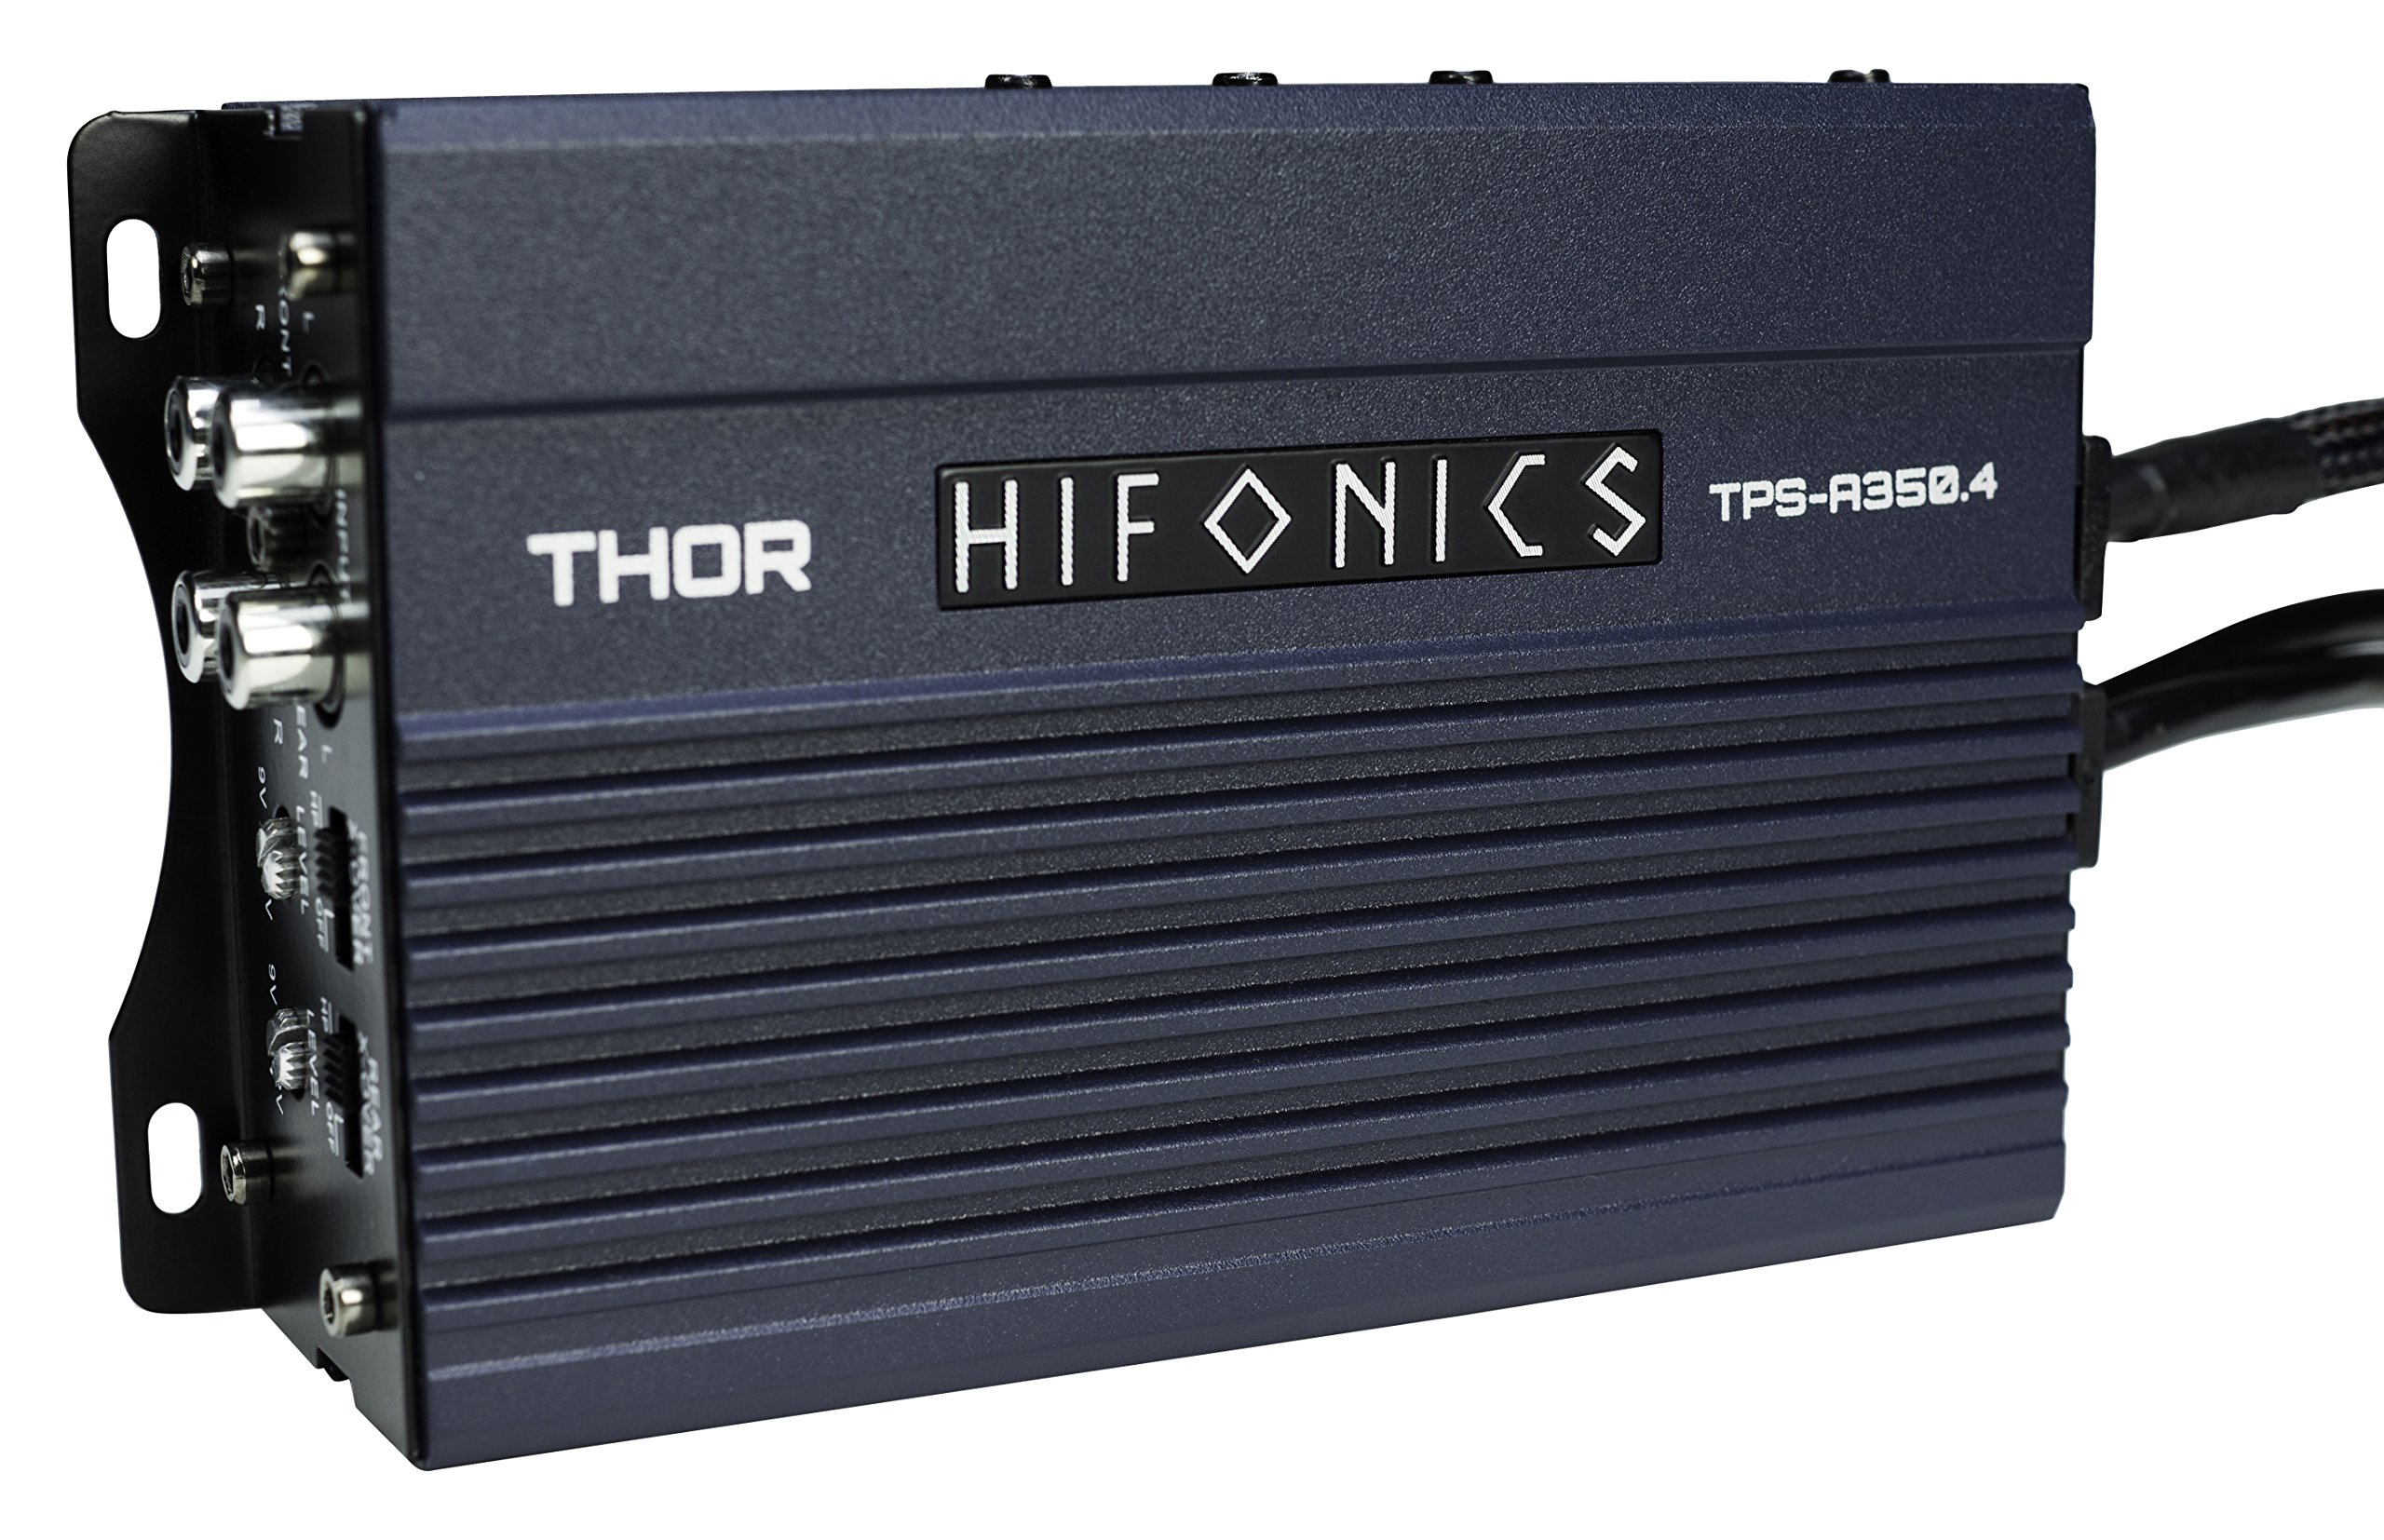 Hifonics TPS-A350.4 Compact Four Channel, 350 Watt Powersports Amplifier